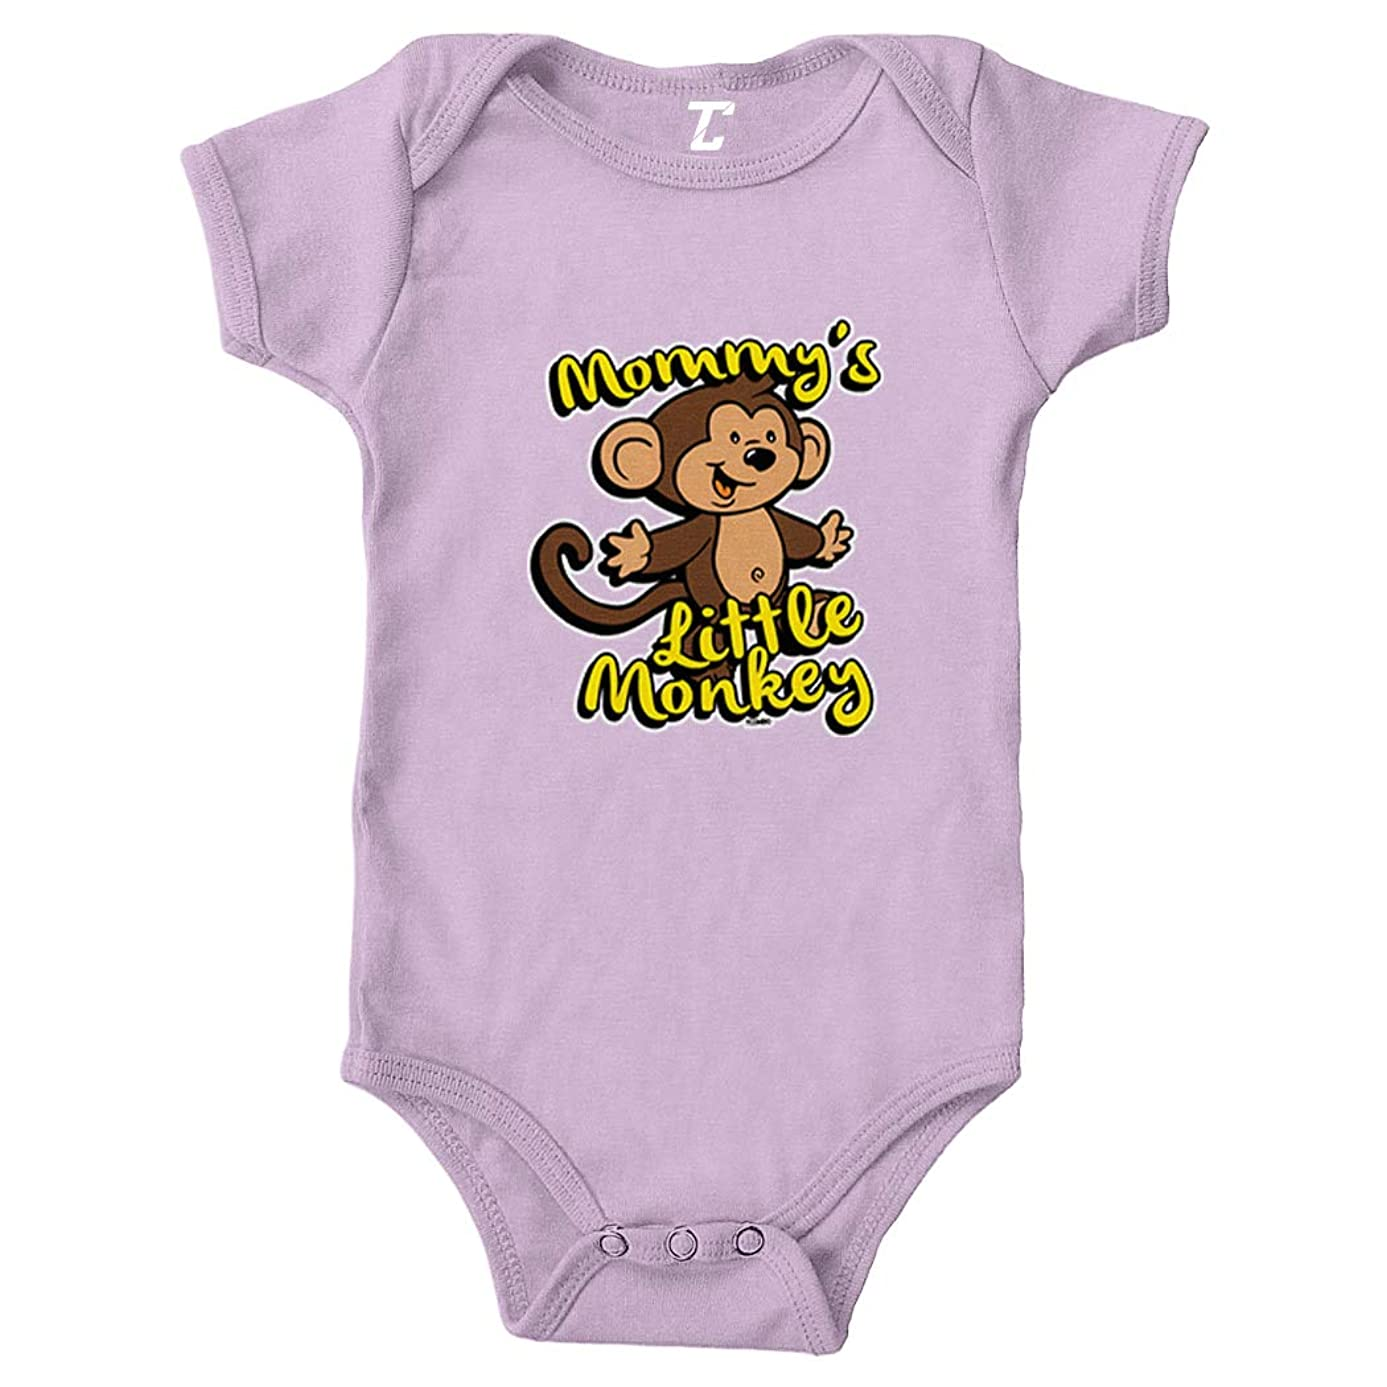 Tcombo Mommy's Little Monkey - Humor Funny Bodysuit